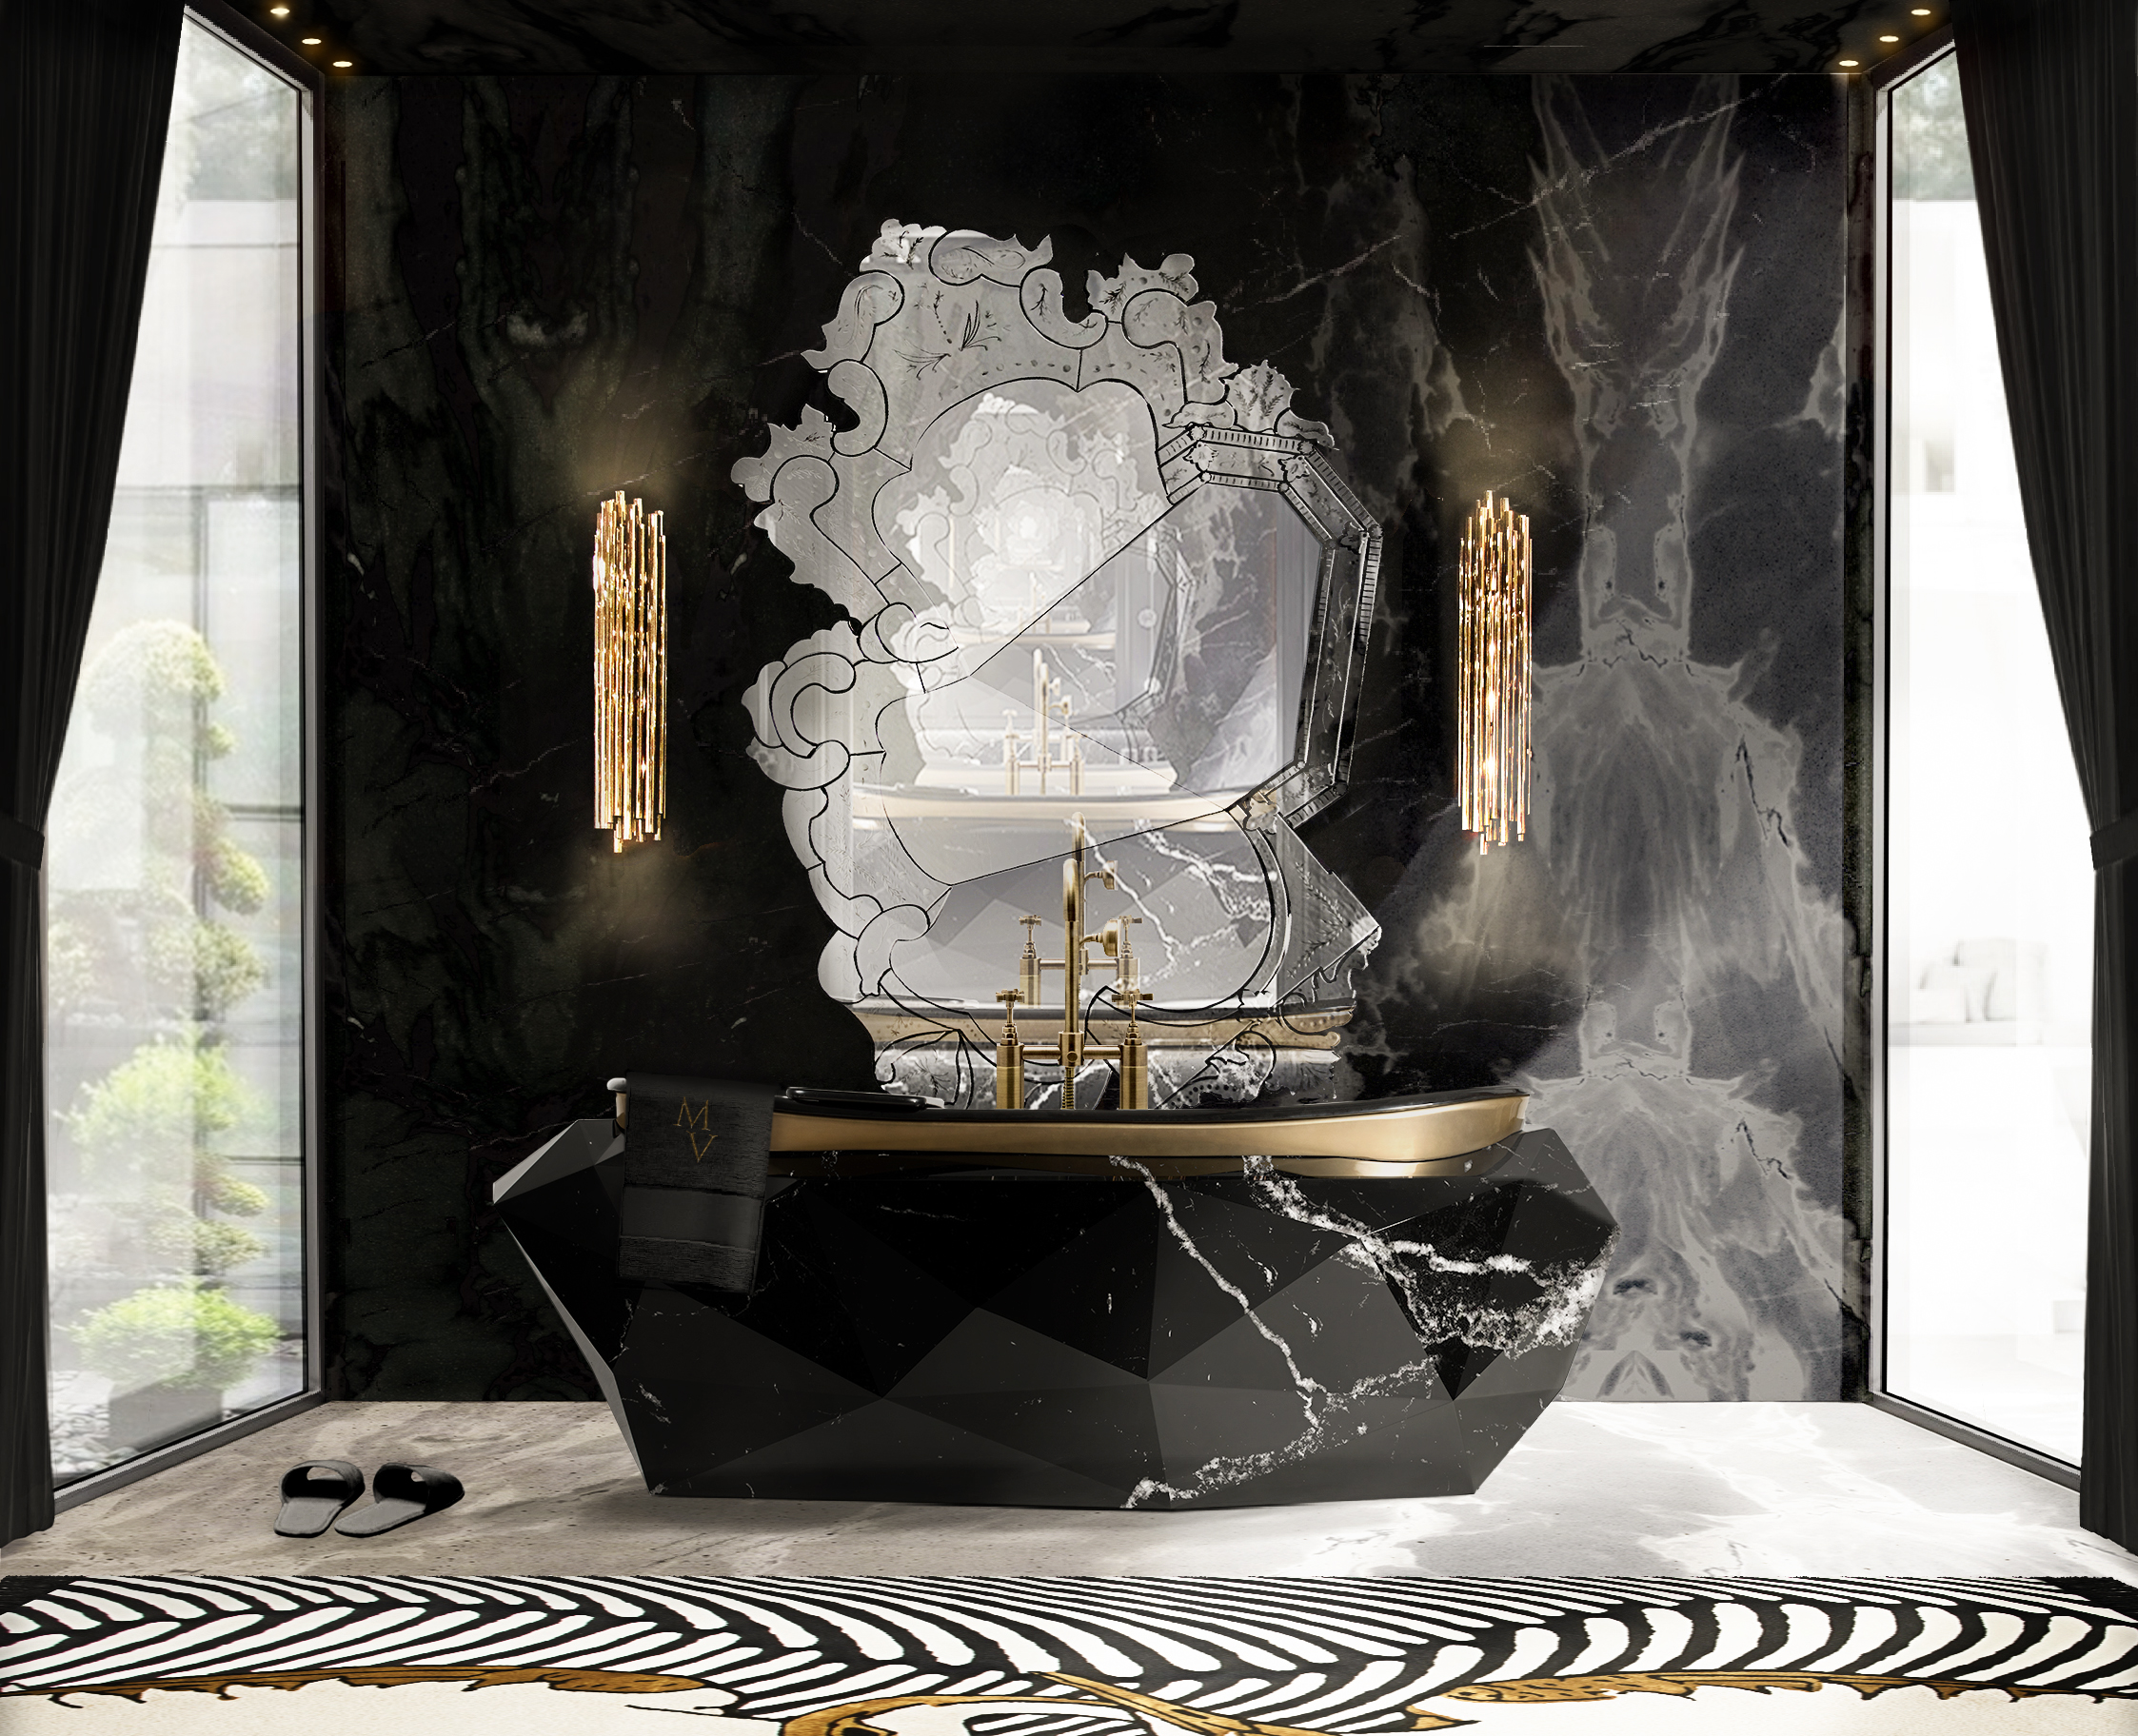 Luxe at home: Maison Valentina presents the latest Diamond Bathtubs Diamond Bathtubs Luxe at home: Maison Valentina presents the latest Diamond Bathtubs diamond faux marble bathtub 20 HR